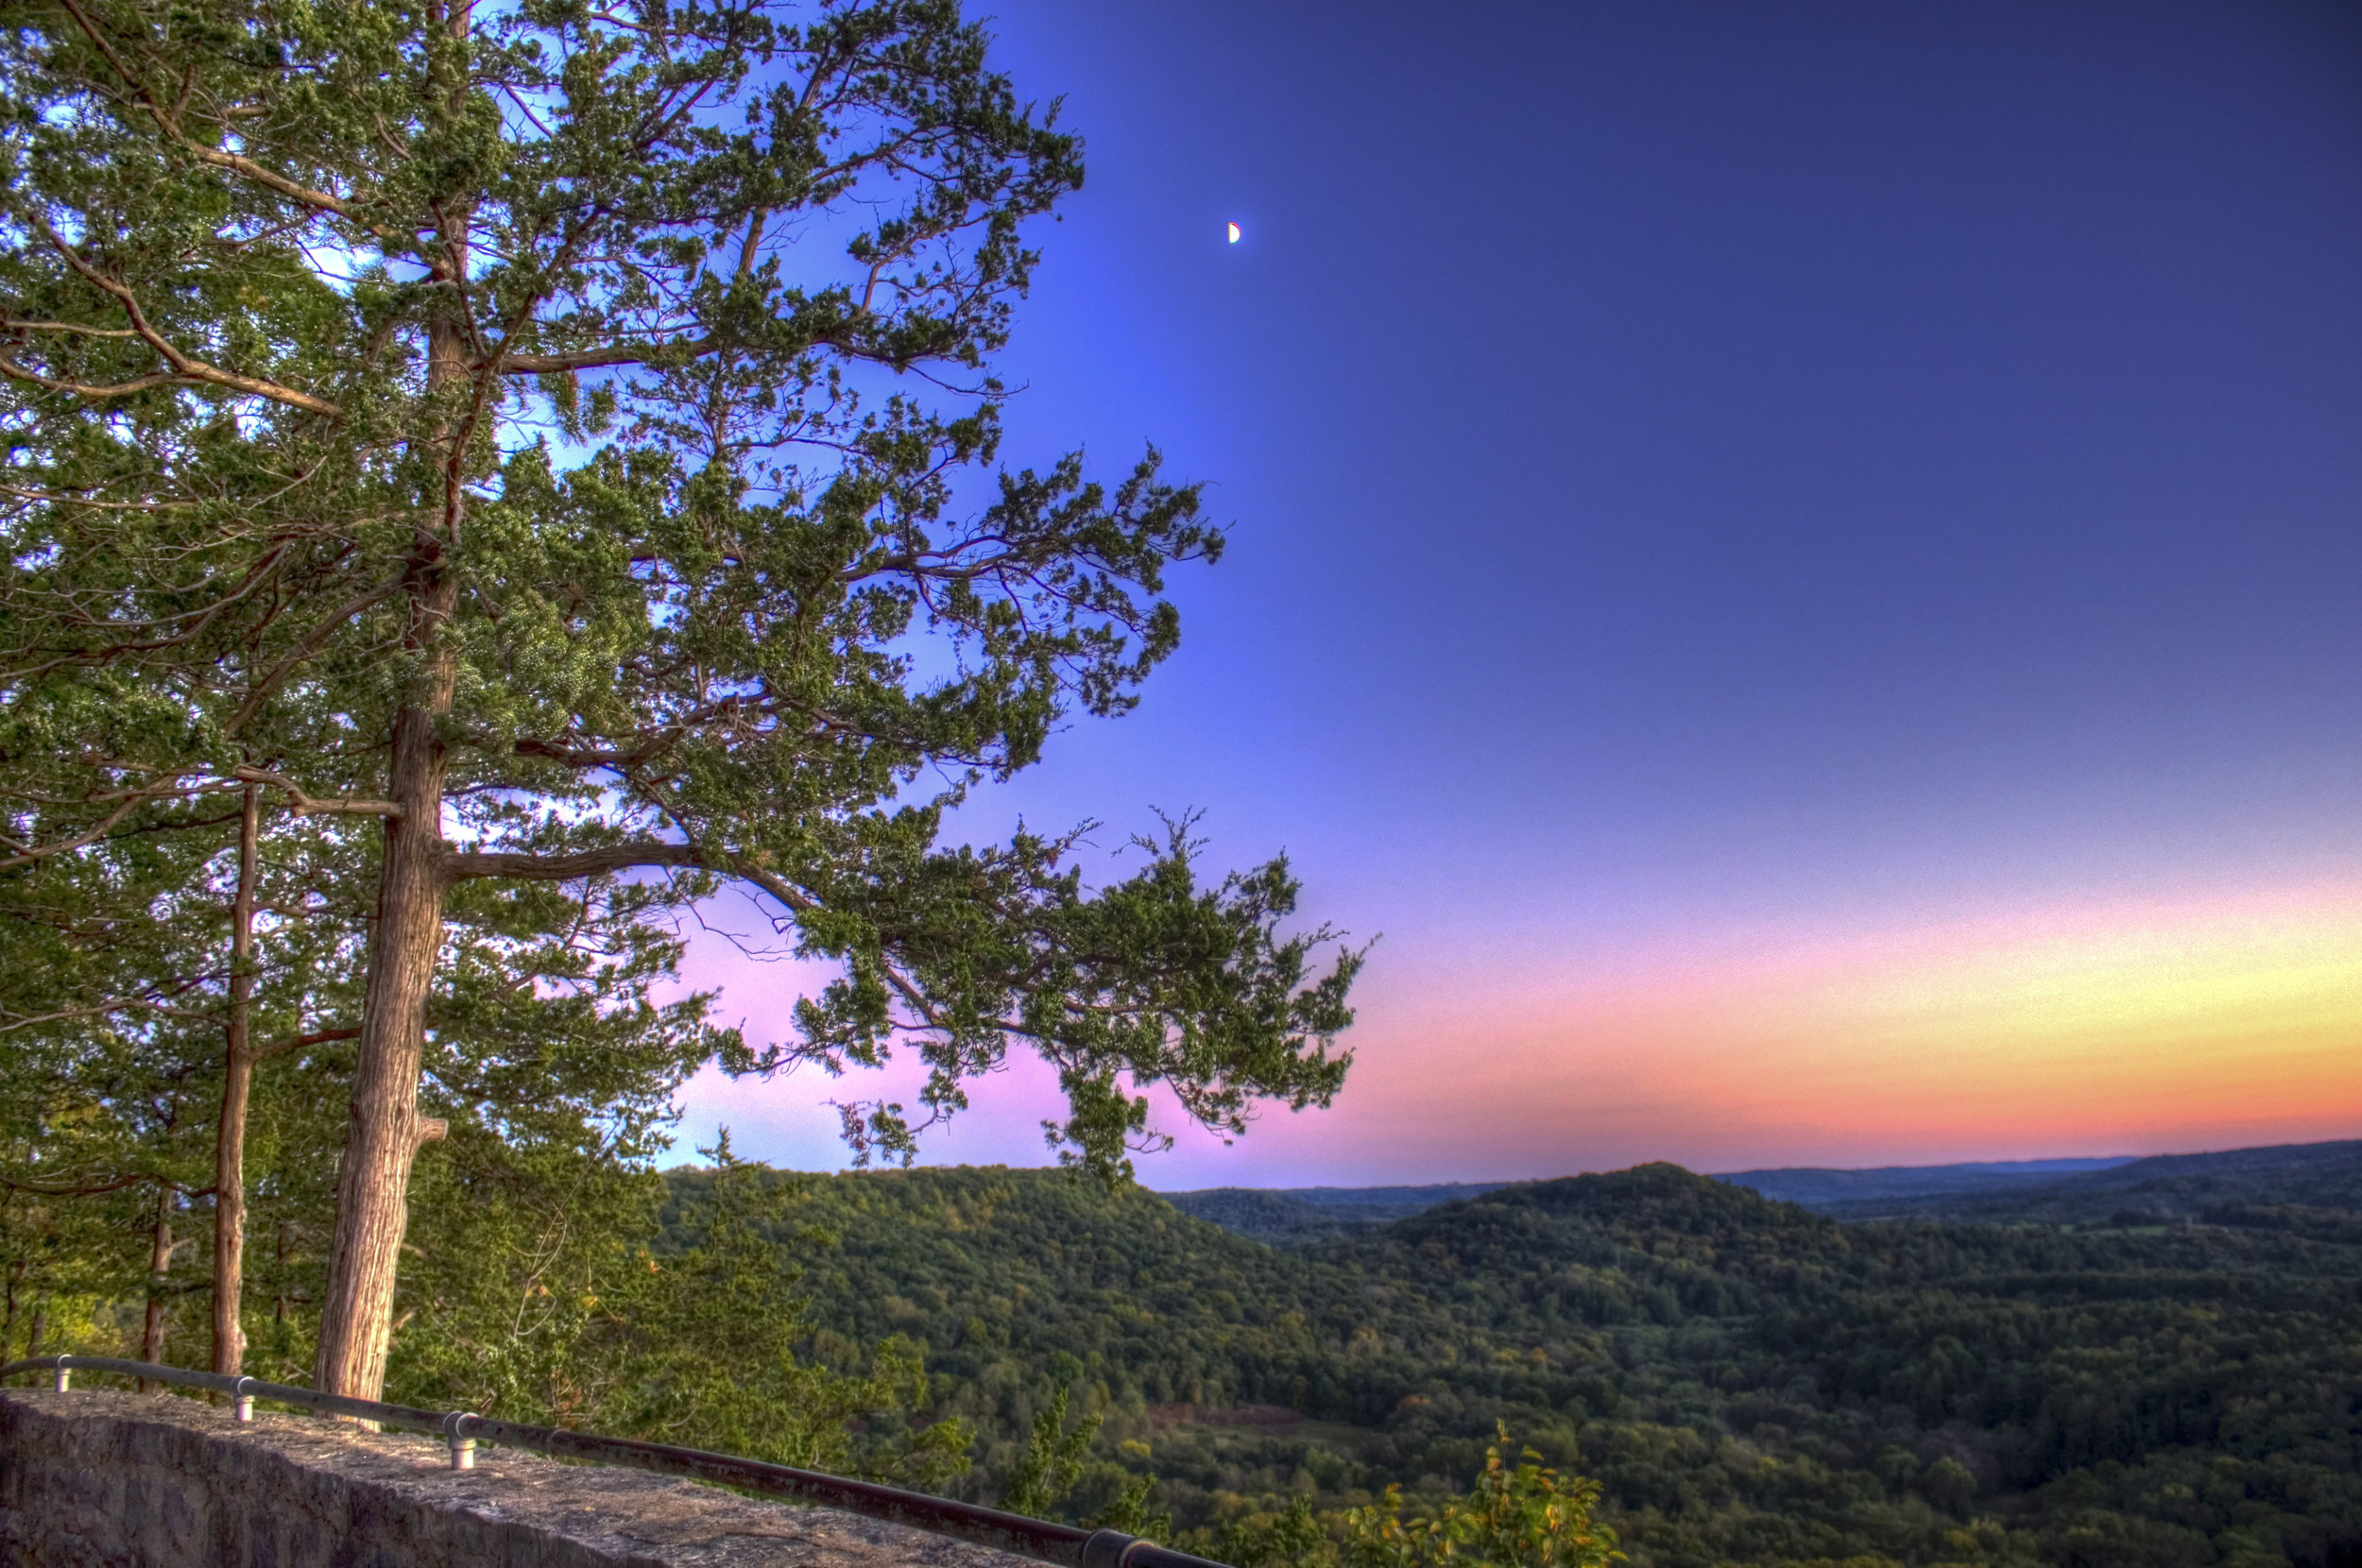 wisconsin-wildcat-mountain-state-park-view-of-the-mountian-at-dusk